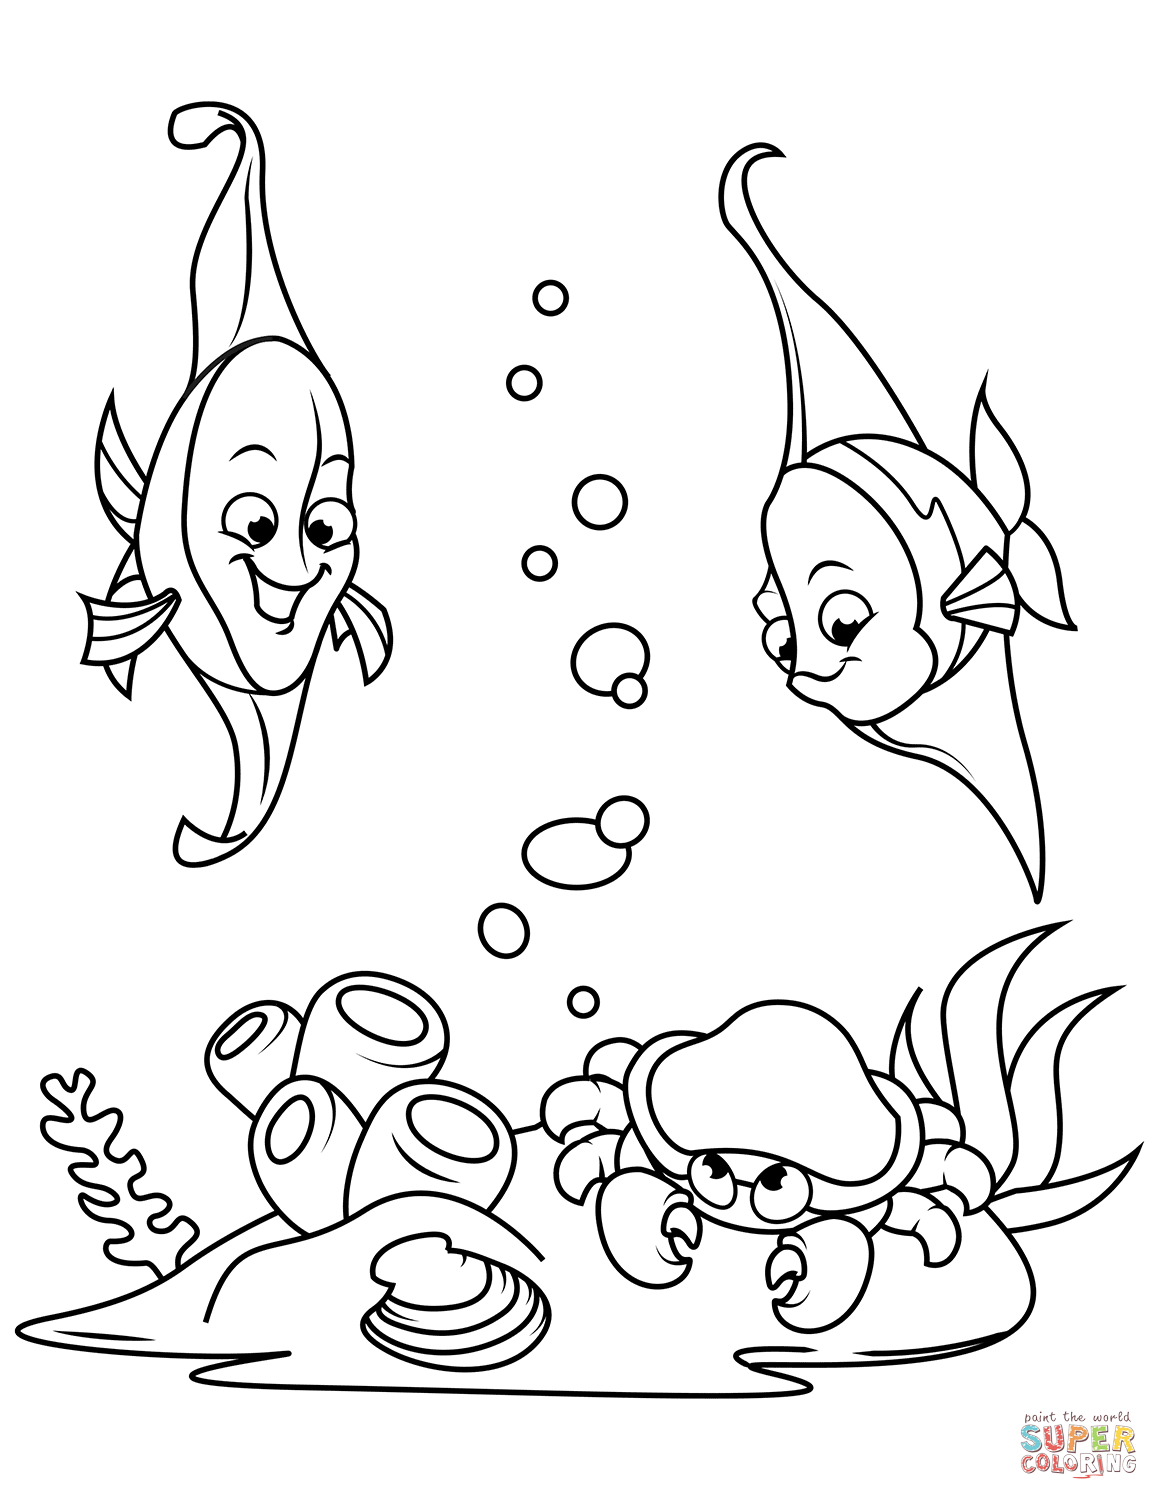 Horseshoe Crab Coloring Page Book